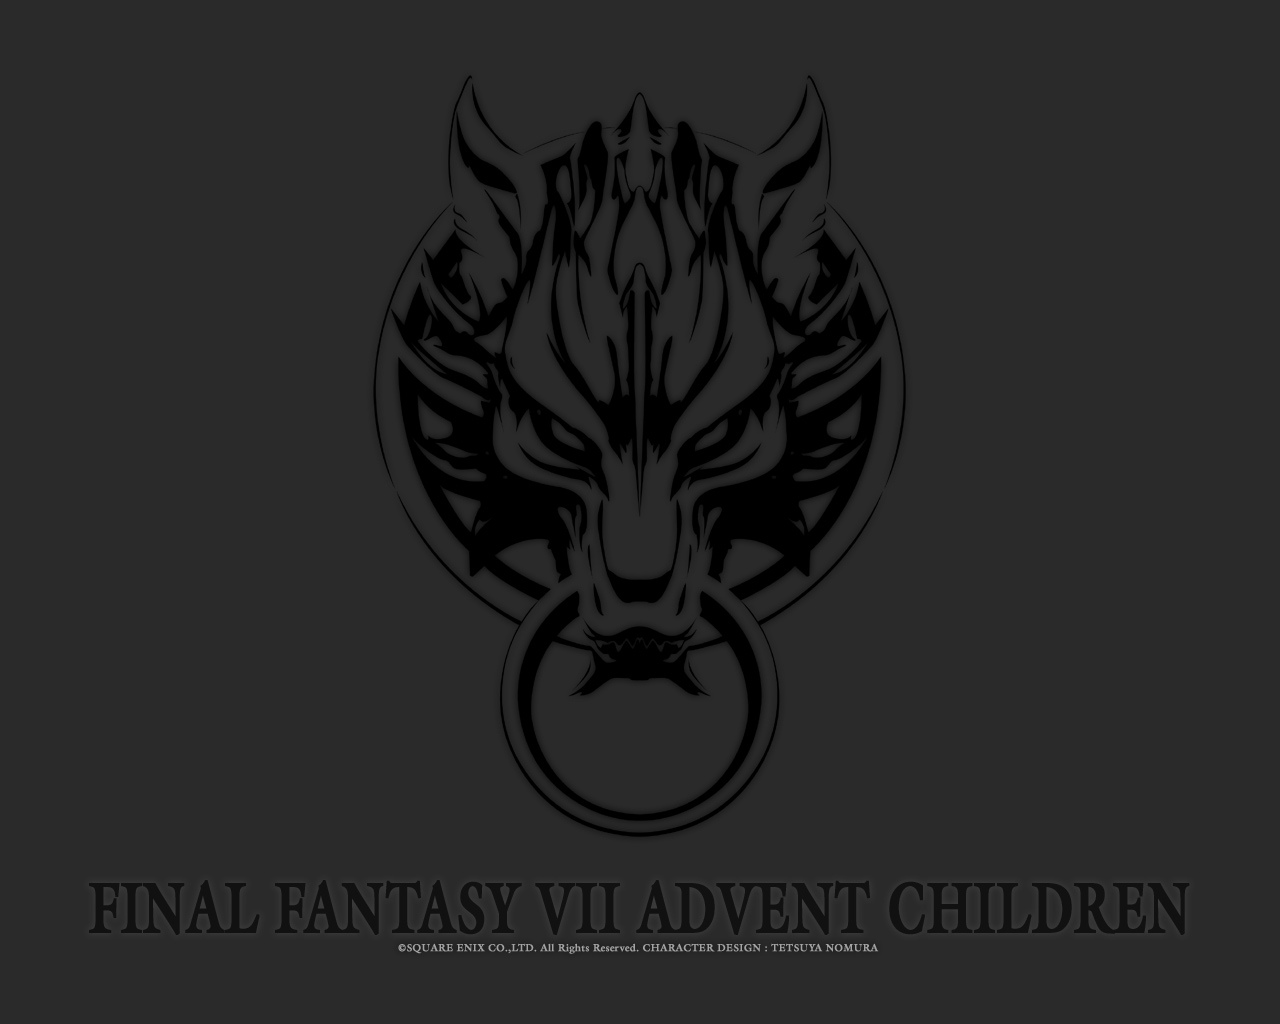 final_fantasy final_fantasy_vii final_fantasy_vii_advent_children logo